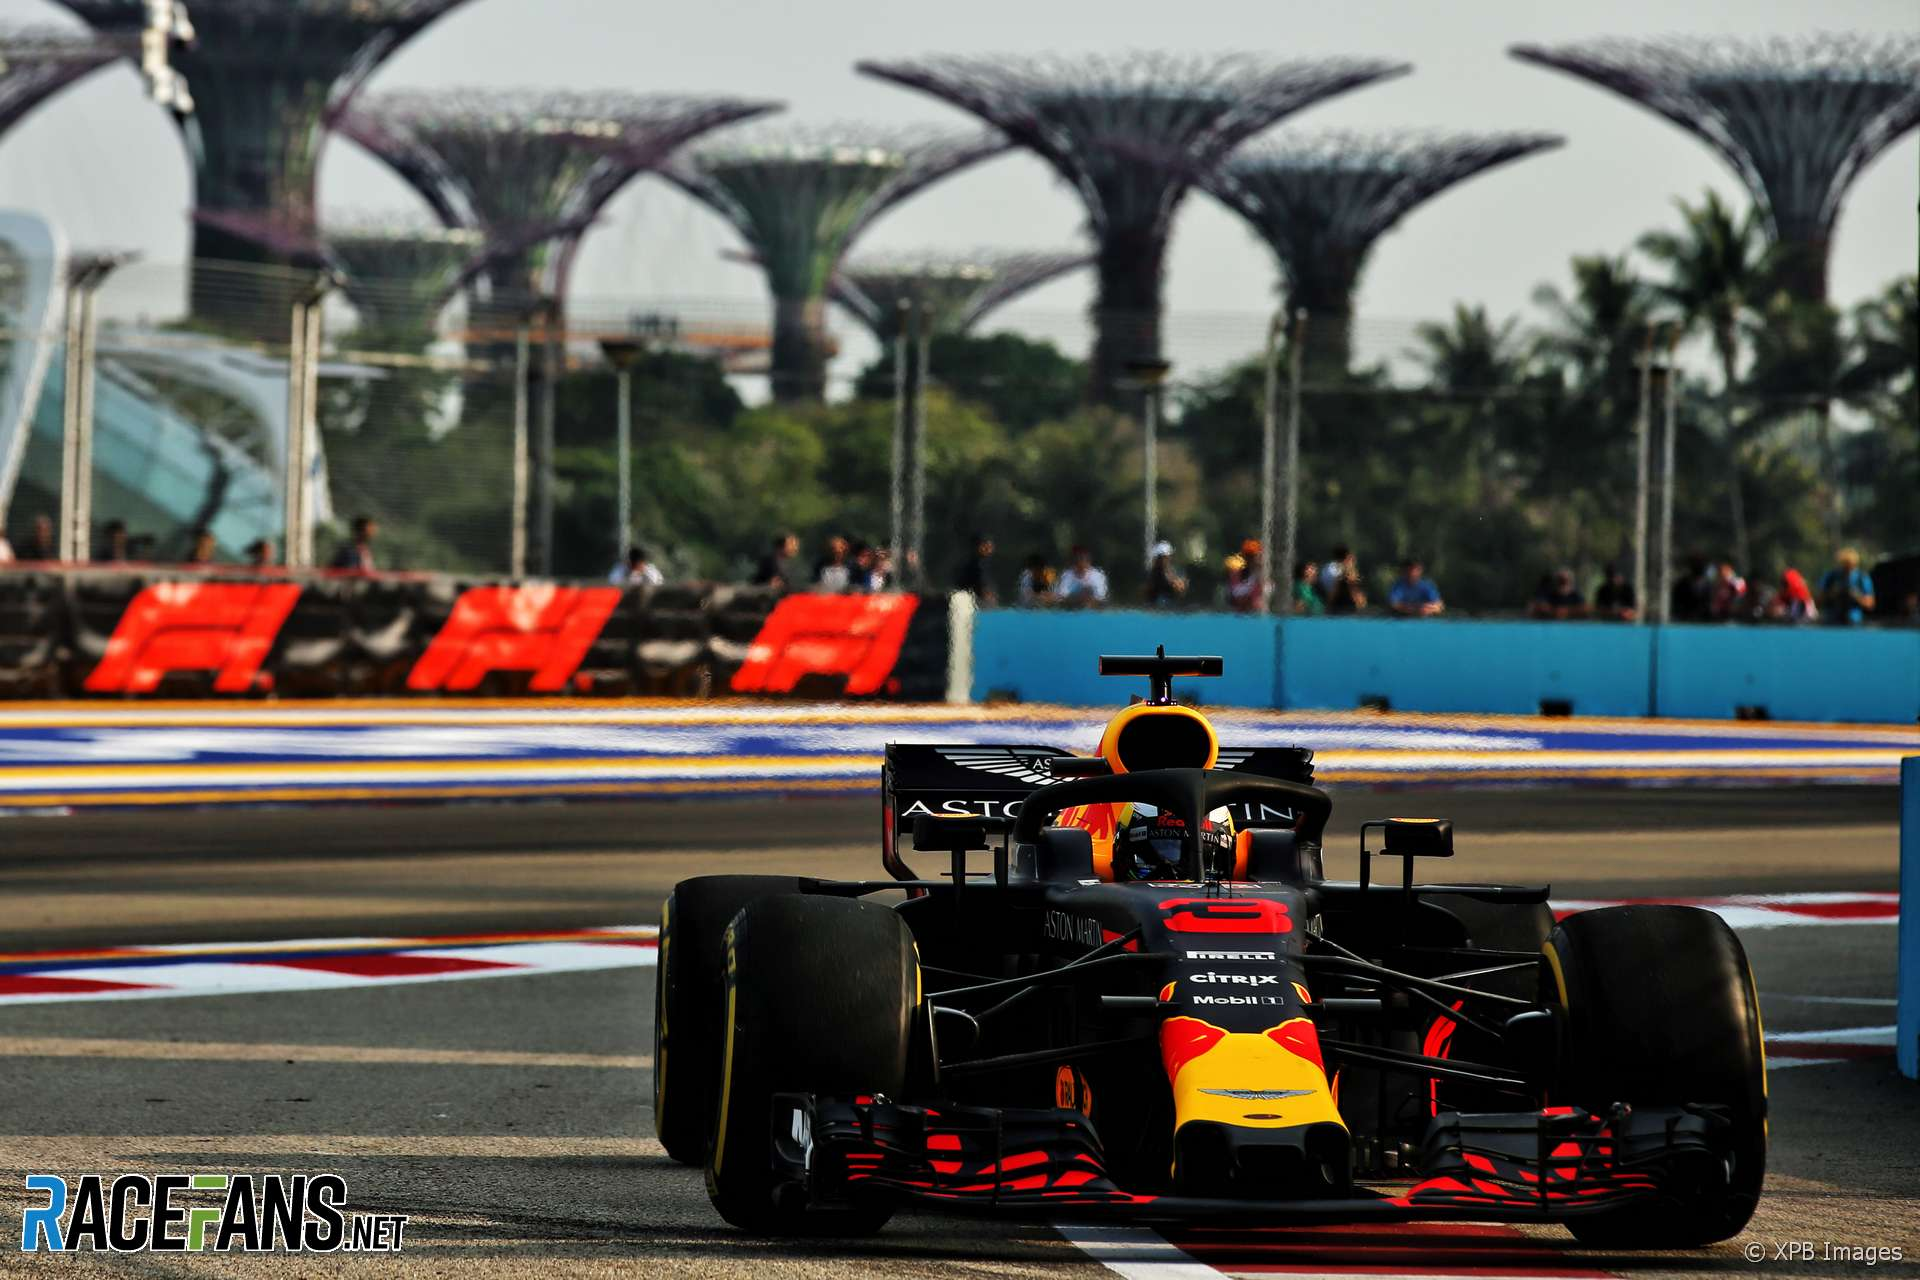 Ricciardo leads Red Bull one-two as Leclerc crashes · RaceFans